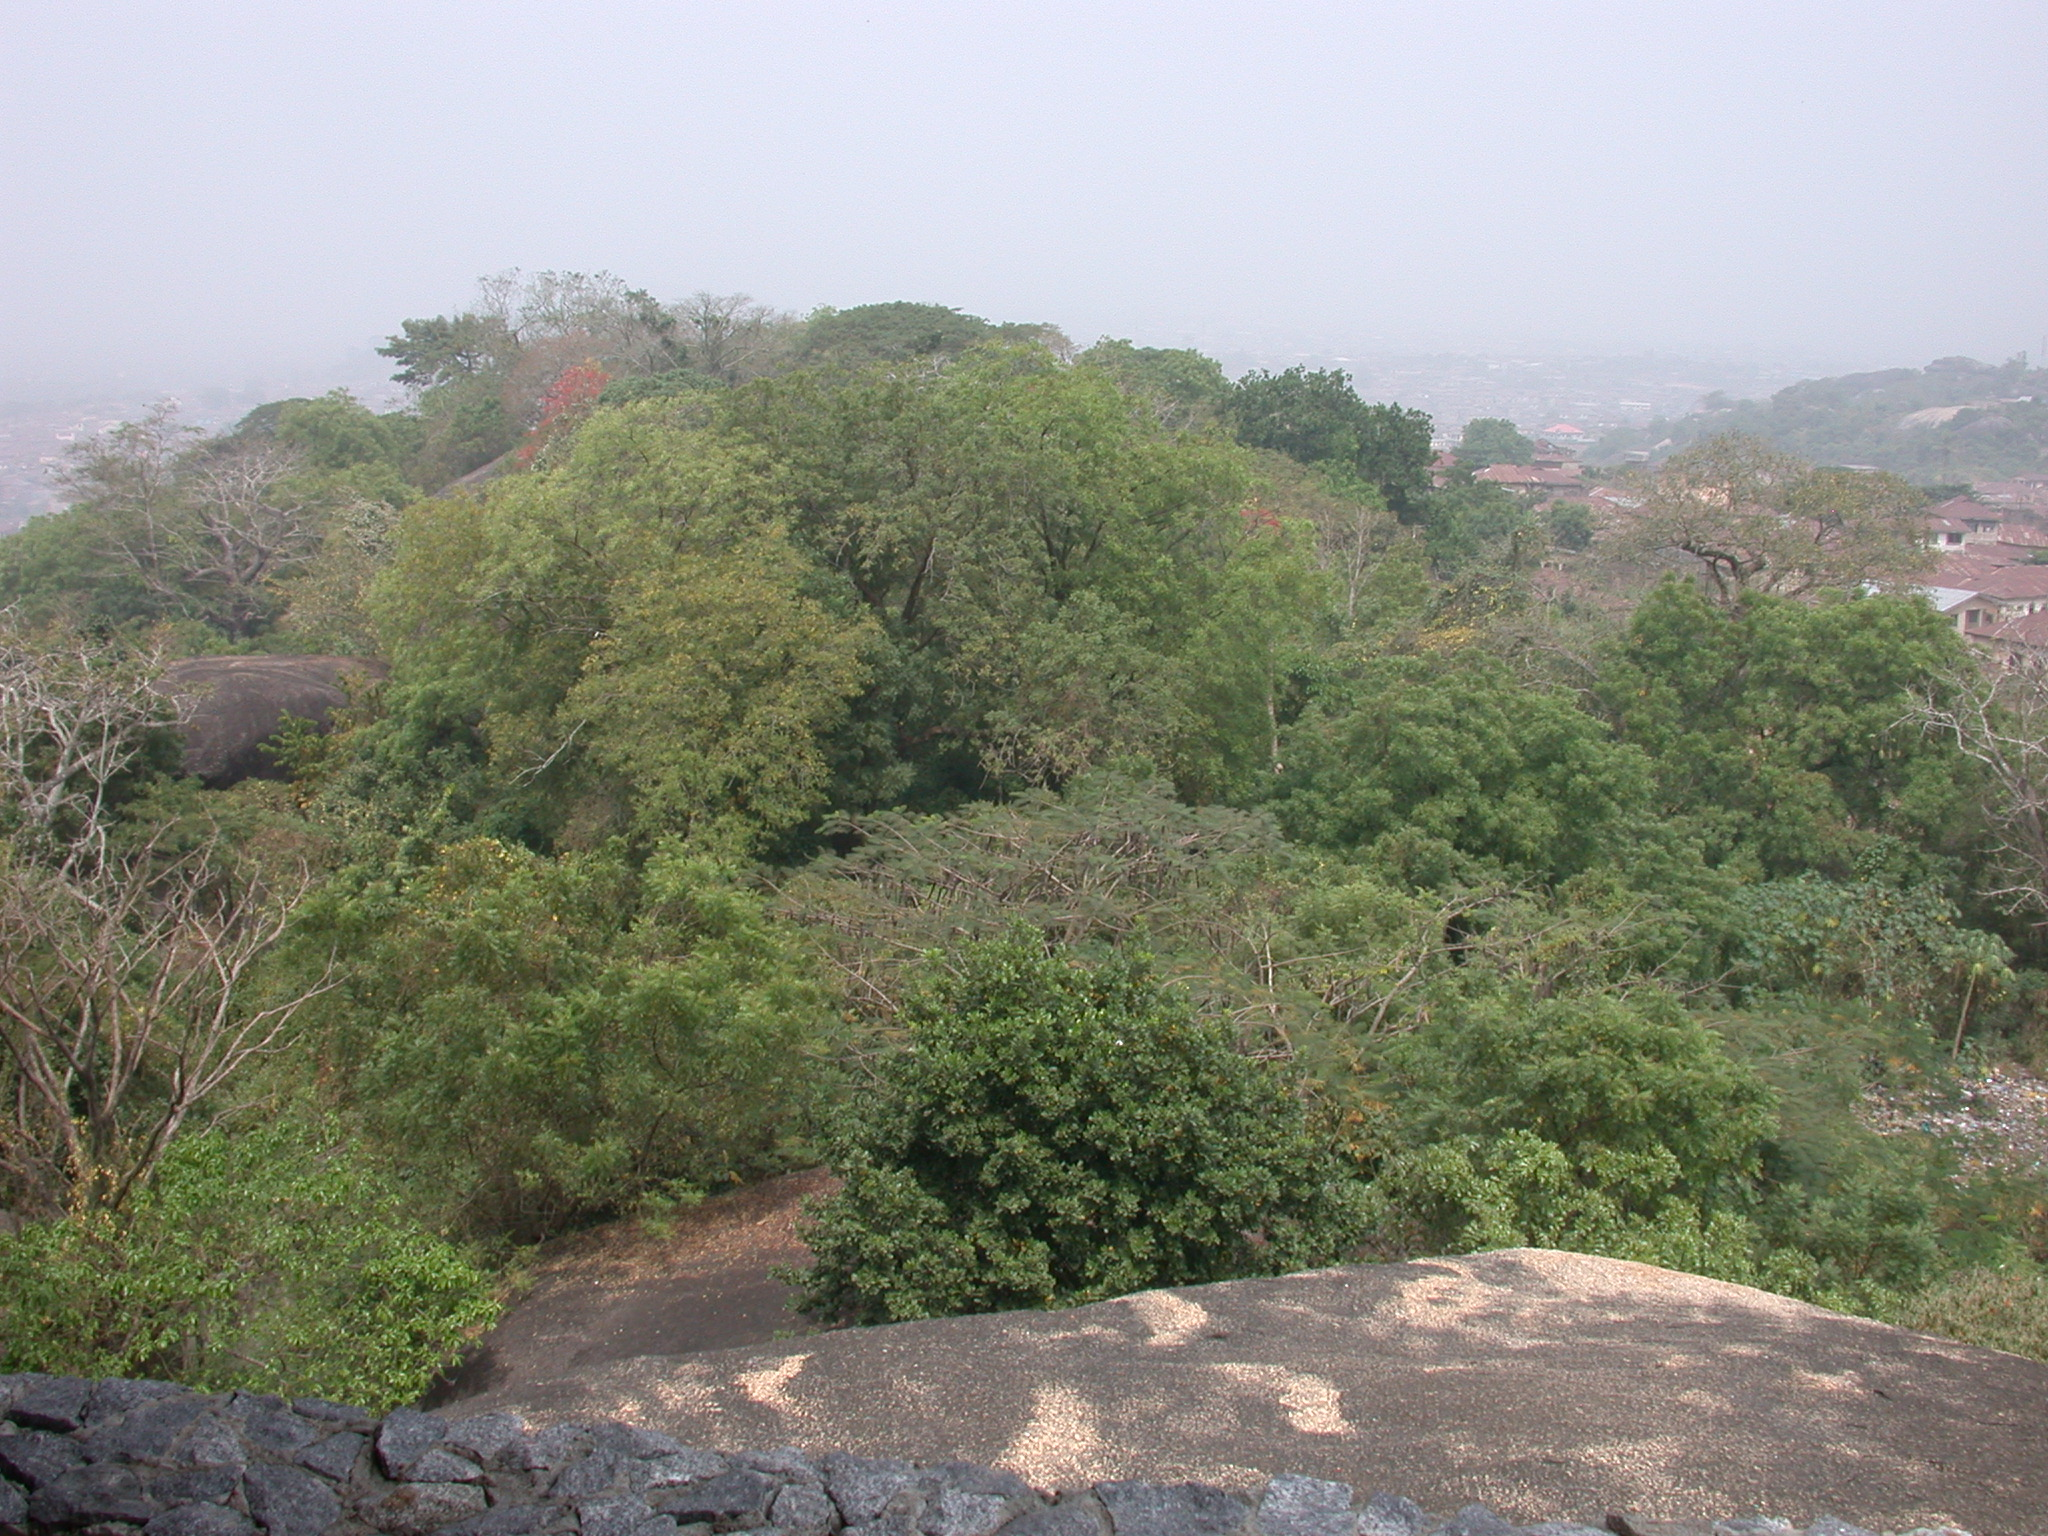 View of Summit, Olumo Rock, Abeokuta, Nigeria